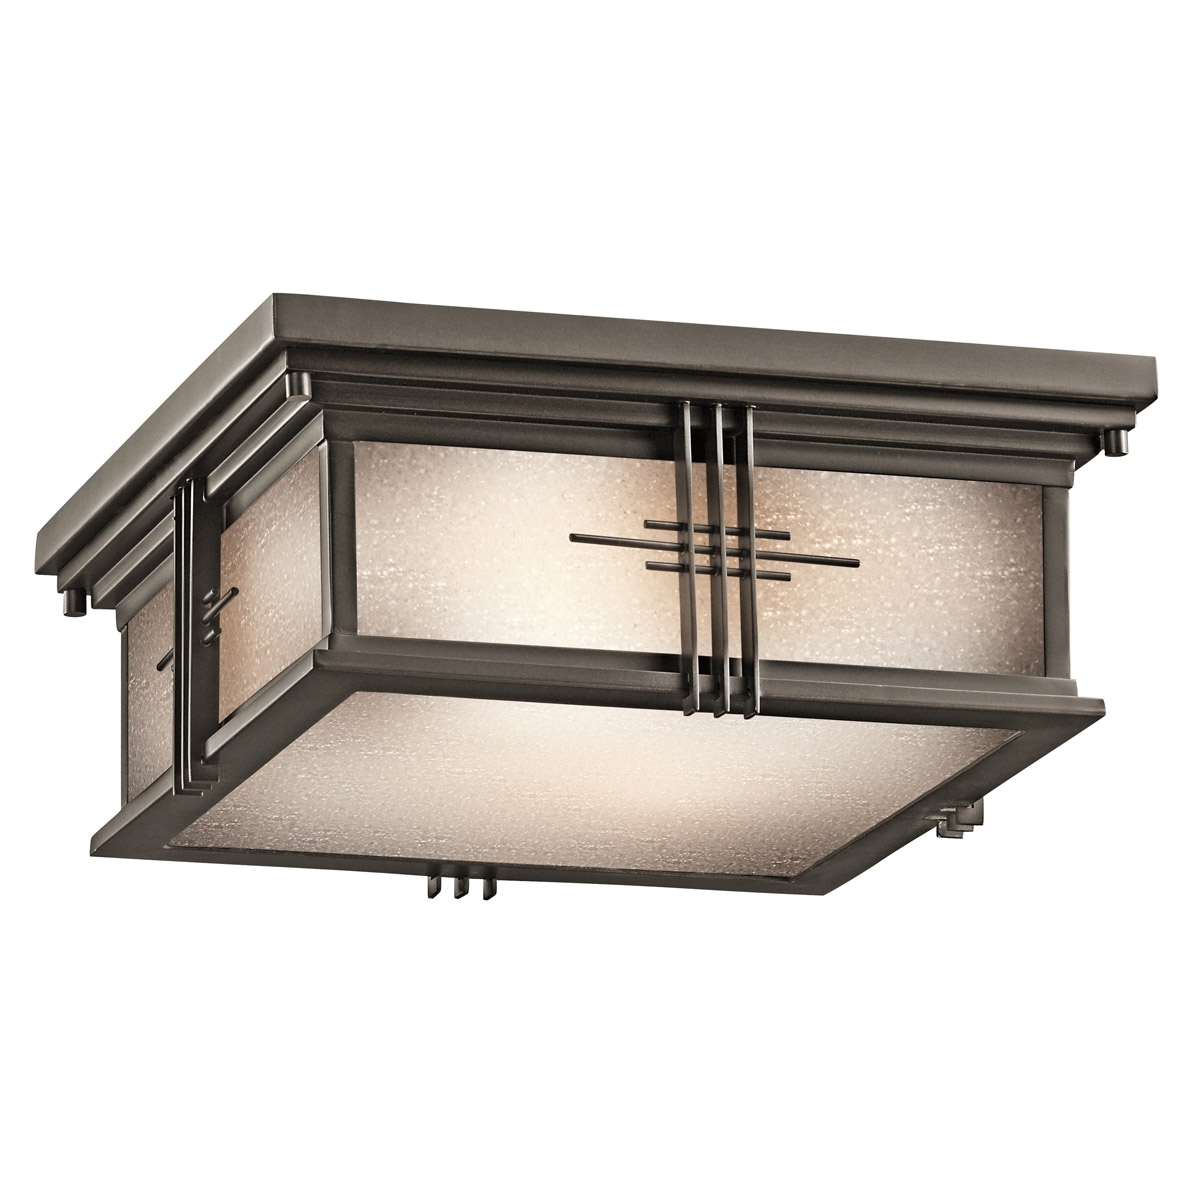 Inspiration about 49164Oz Portman Square Outdoor Flush Mount Ceiling Fixture Regarding Outdoor Ceiling Flush Lights (#8 of 15)